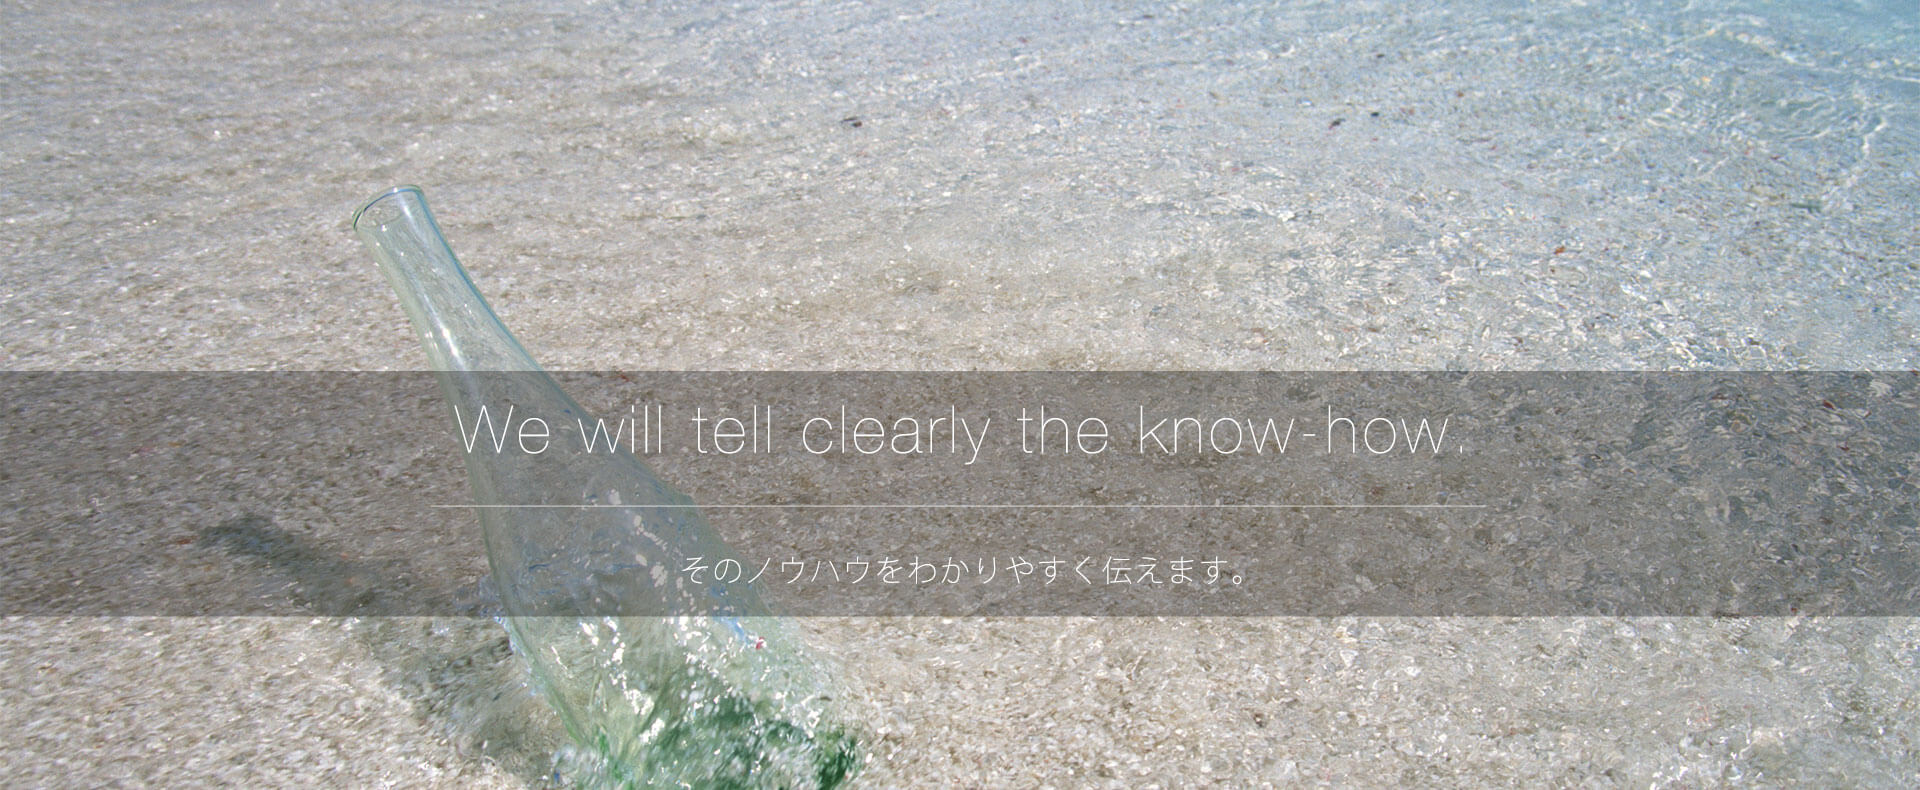 We will tell clearly the know-how.